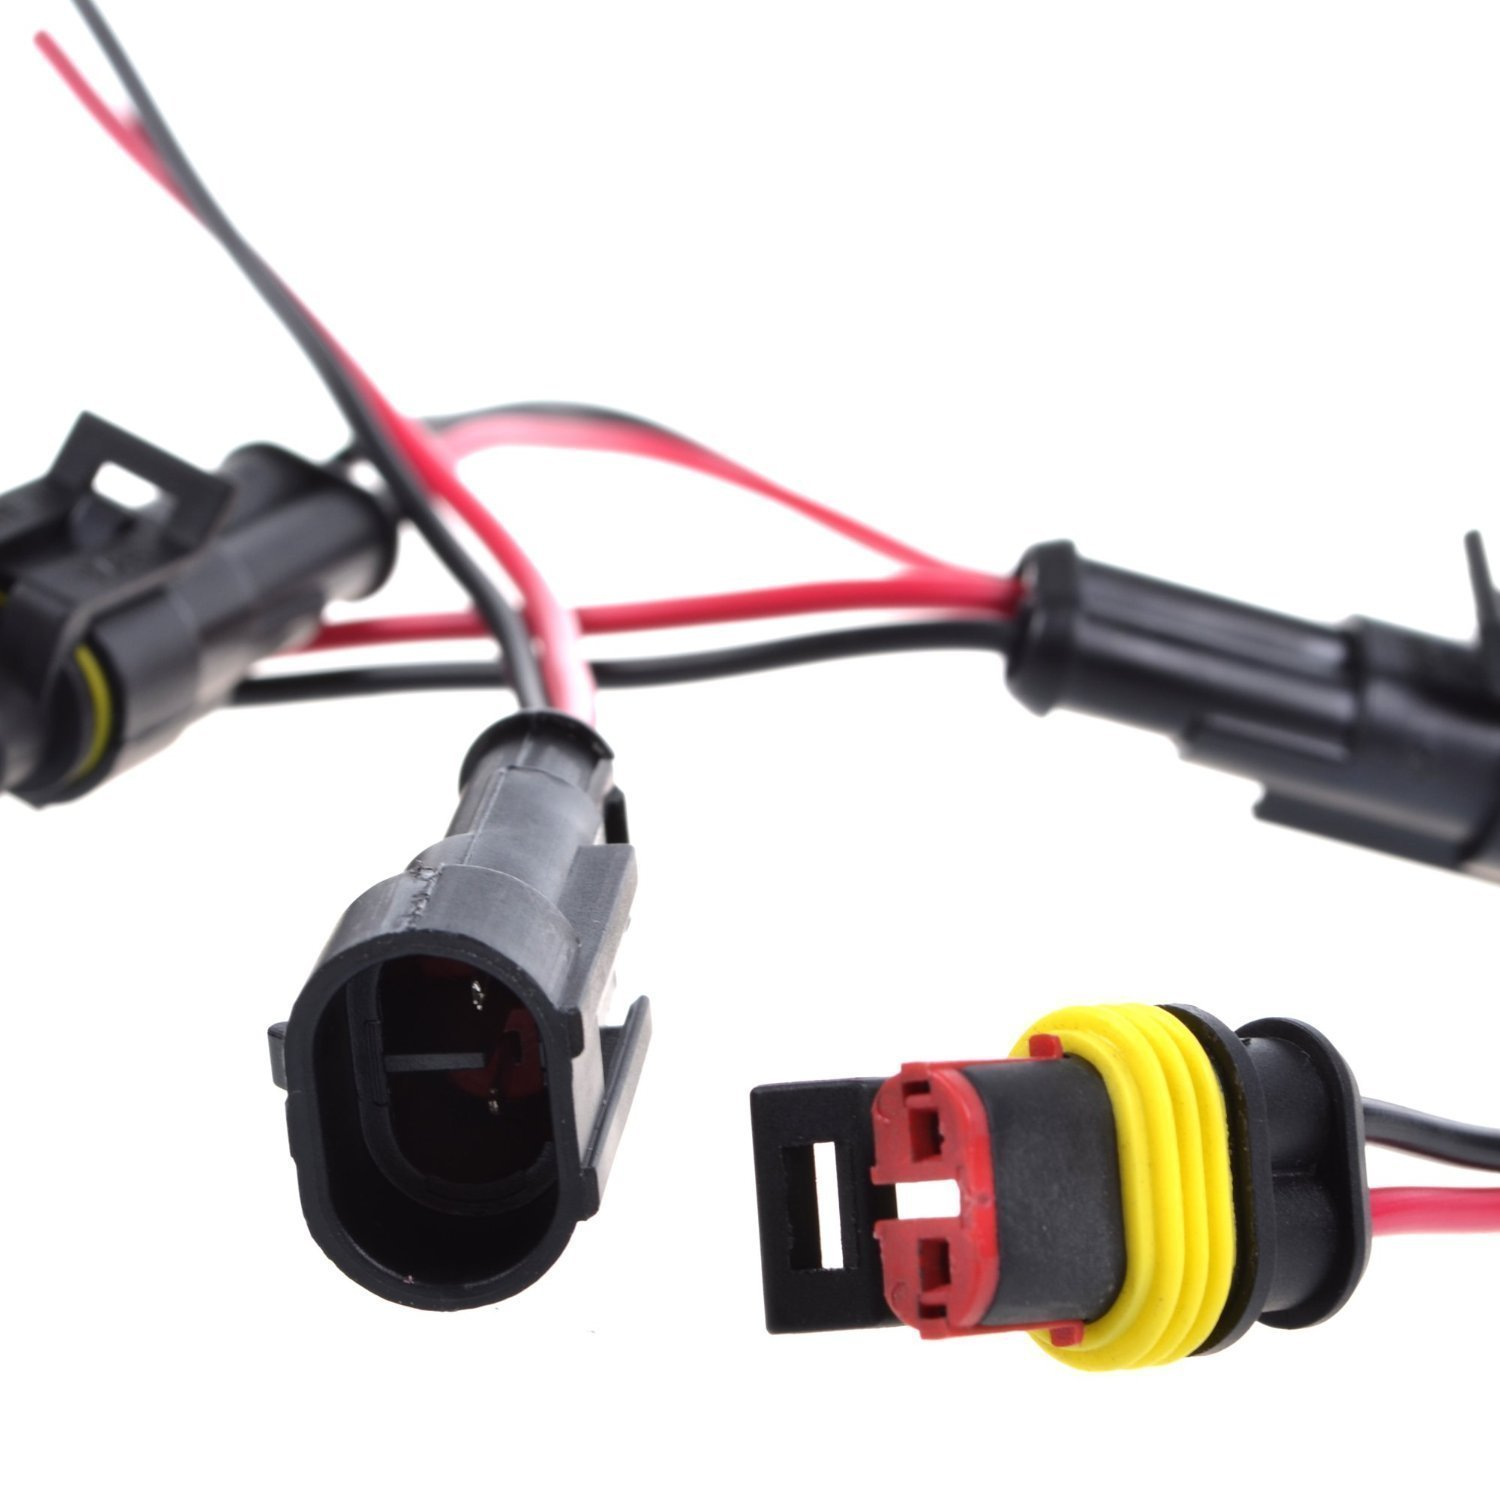 Beenlen 6 Set 2 Pin Way Car Waterproof Electrical Connector Plug with Wire AWG Marine